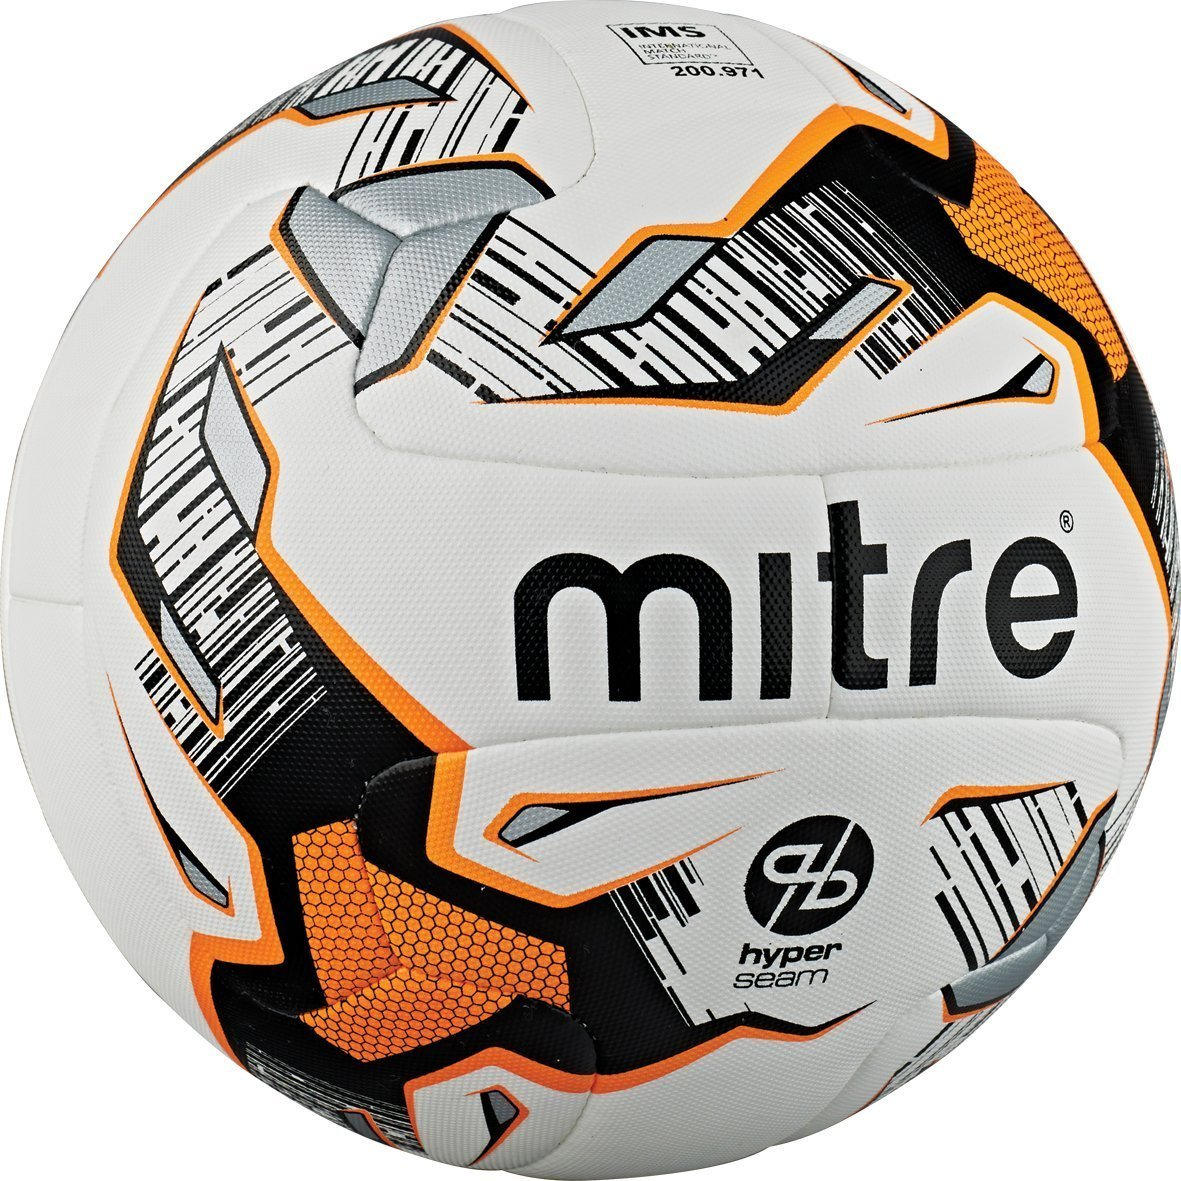 Mitre Ultimatch Hyperseam Soccer Ball, White/Black/Orange, Size 4 by mitre (Image #1)